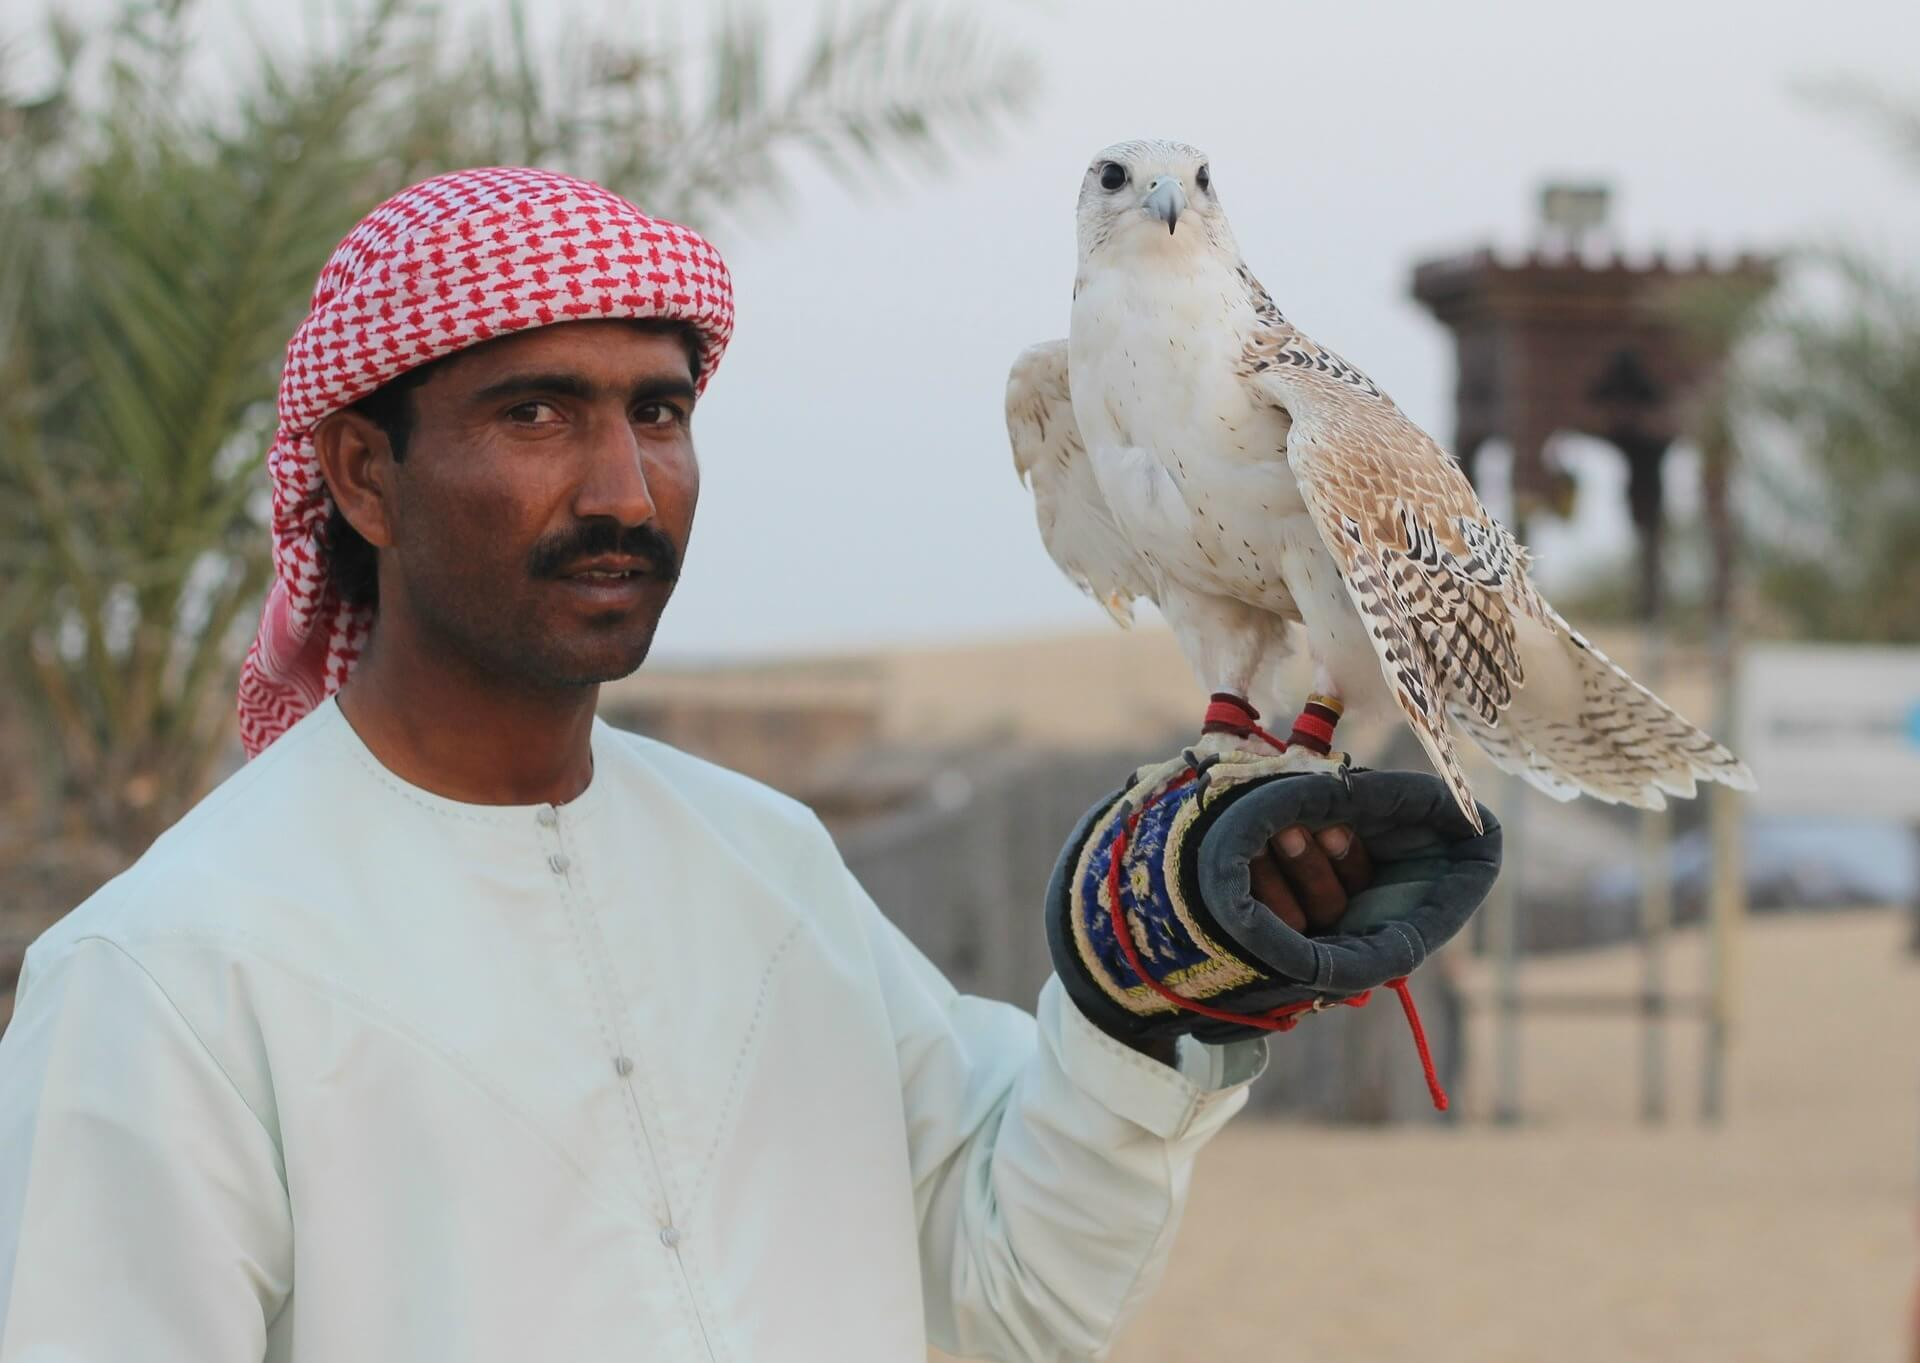 Muslim man in red head scarf, holding Falcon on his arm